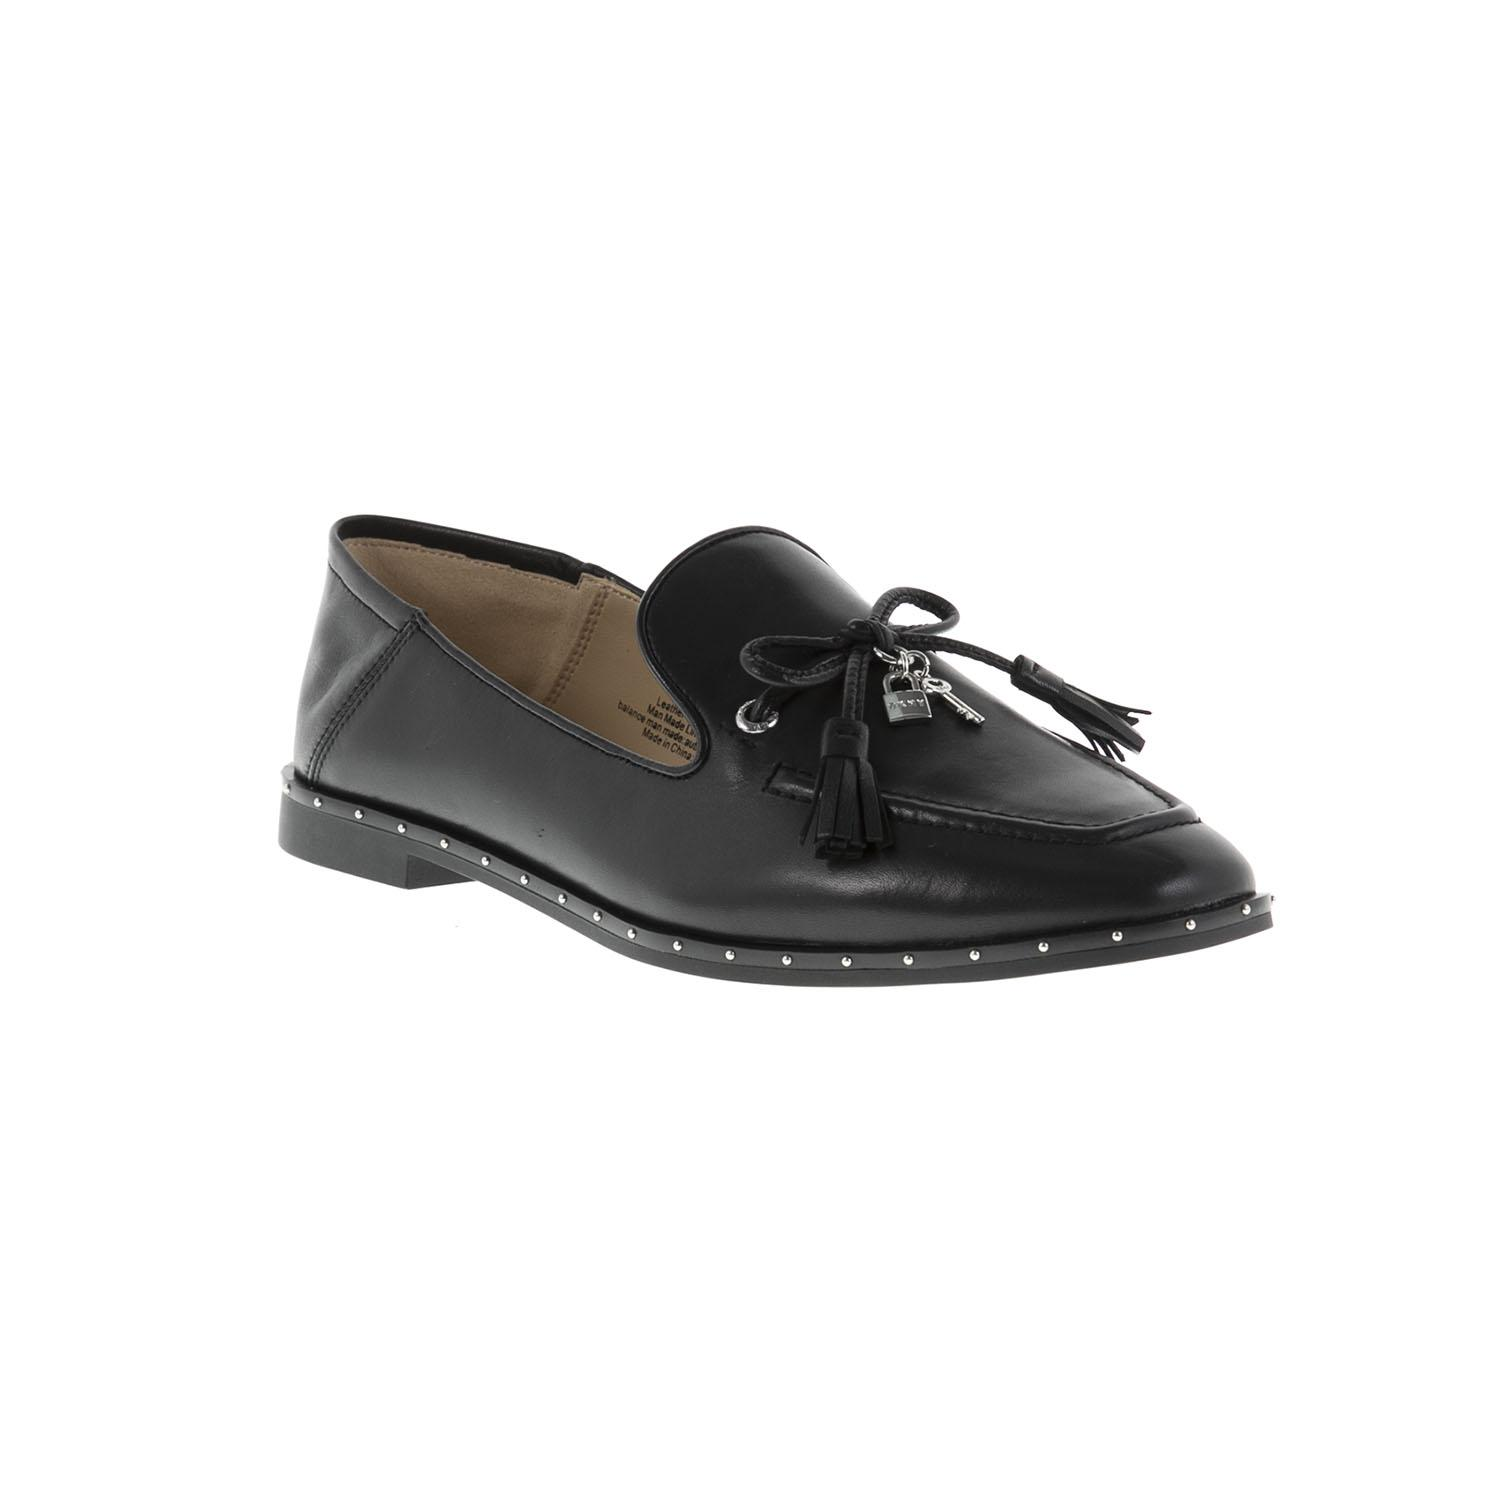 e6c196e466f DKNY Laura Mocassin Shoes in Black - Lyst